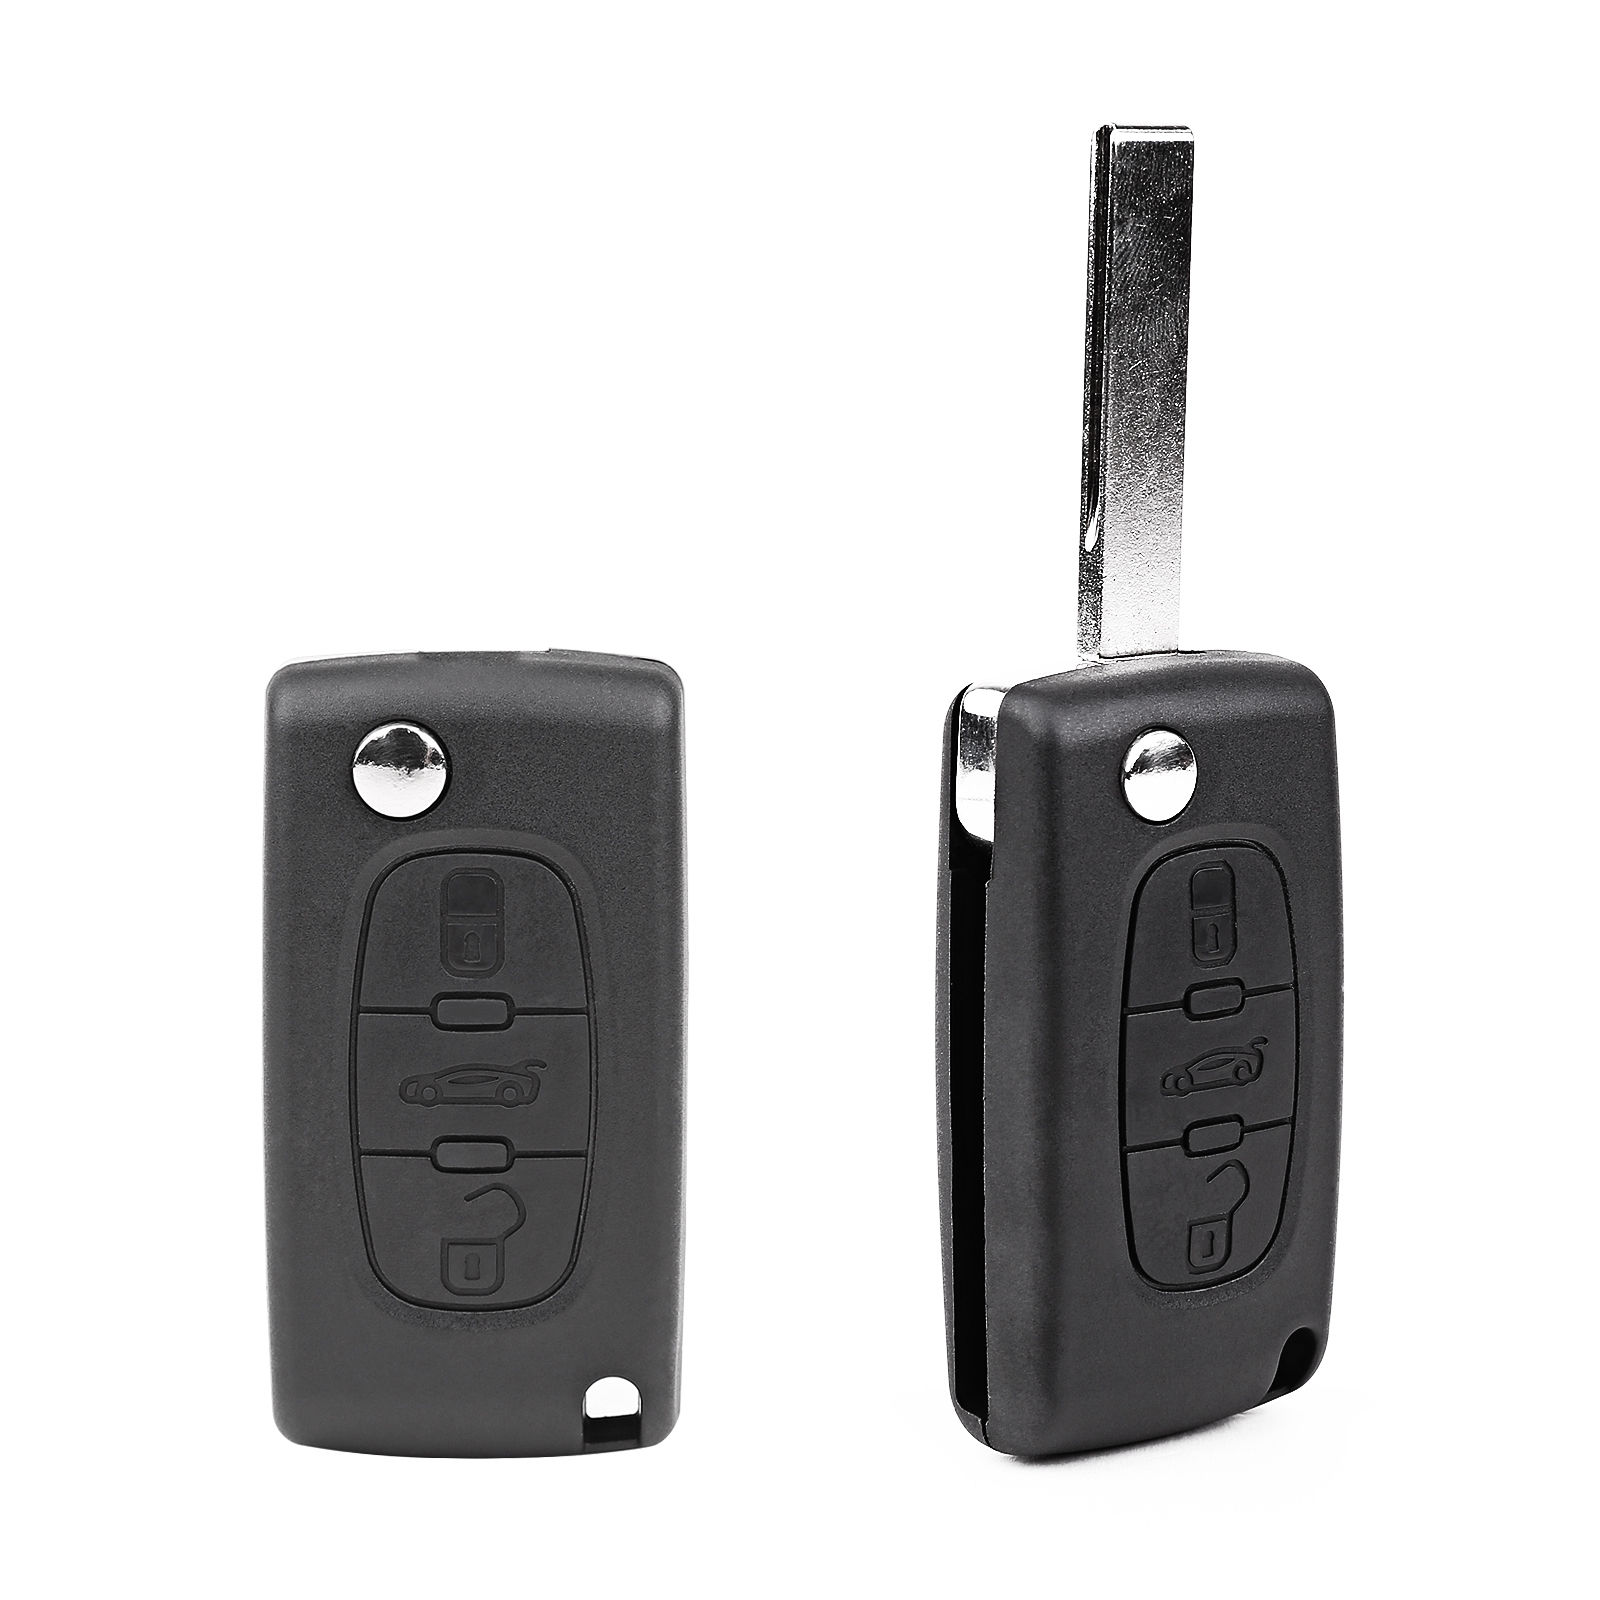 3 Buttons Folding Remote Key Shell case protection <font><b>cover</b></font> Replacement for <font><b>PEUGEOT</b></font> 207 307 407 <font><b>308</b></font> 607 Key Shell fitting image